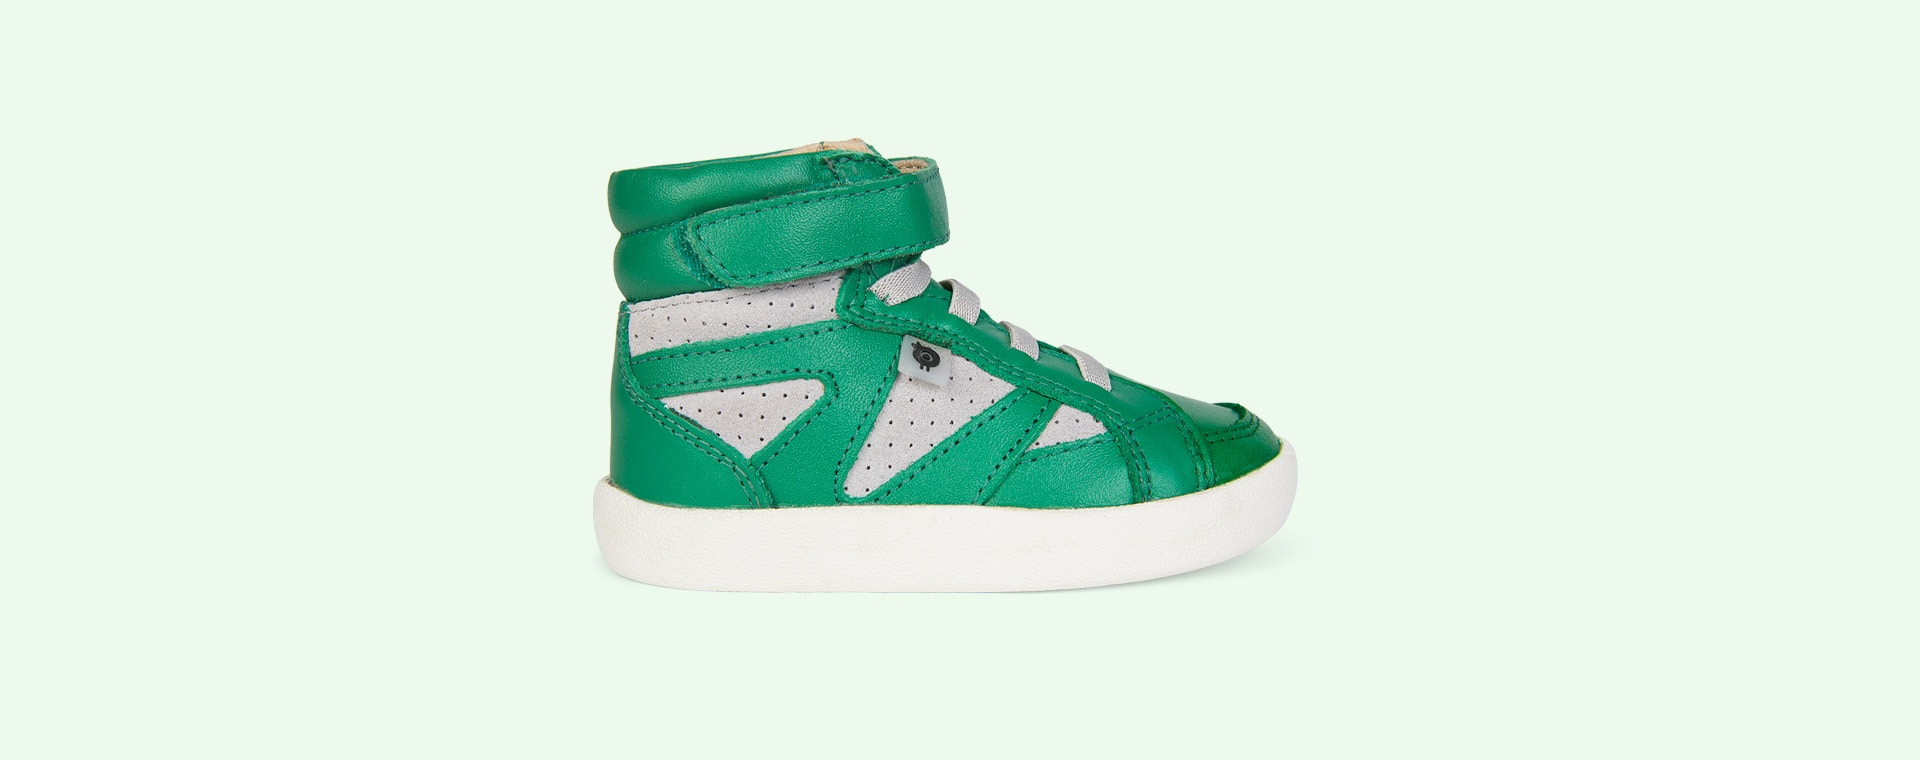 Green/Grey old soles New Leader High Top Trainer